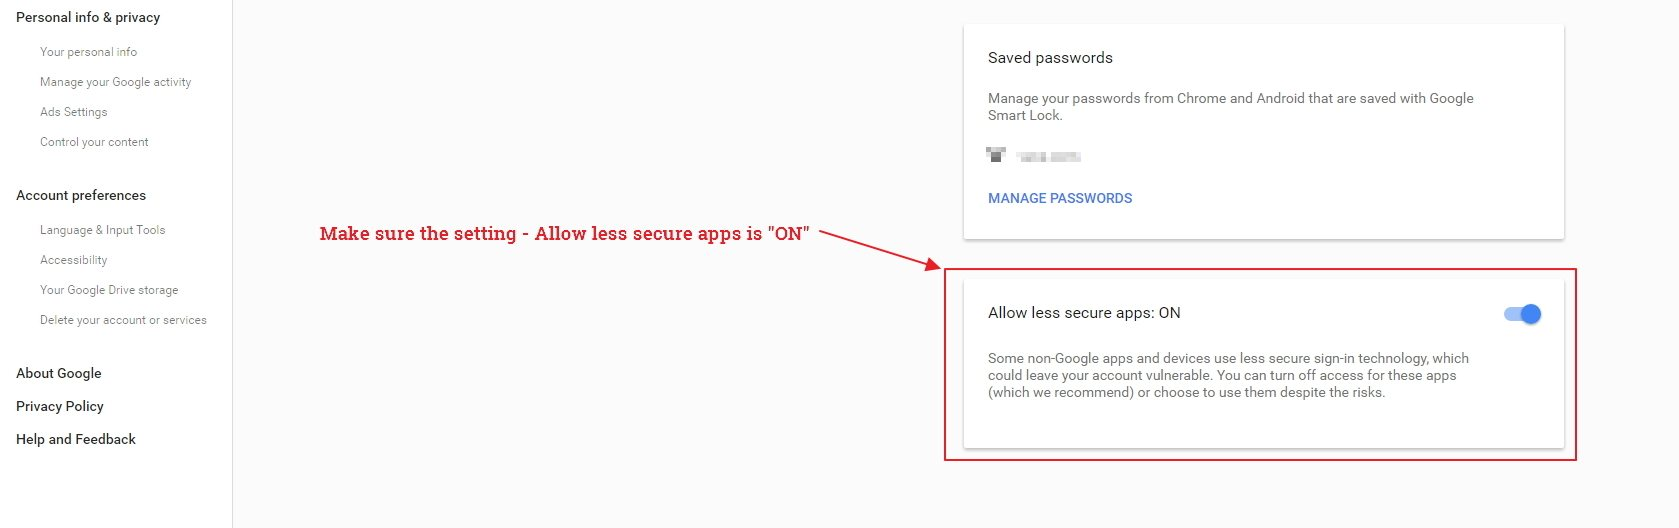 Gmail Security Settings - Allow less secure apps